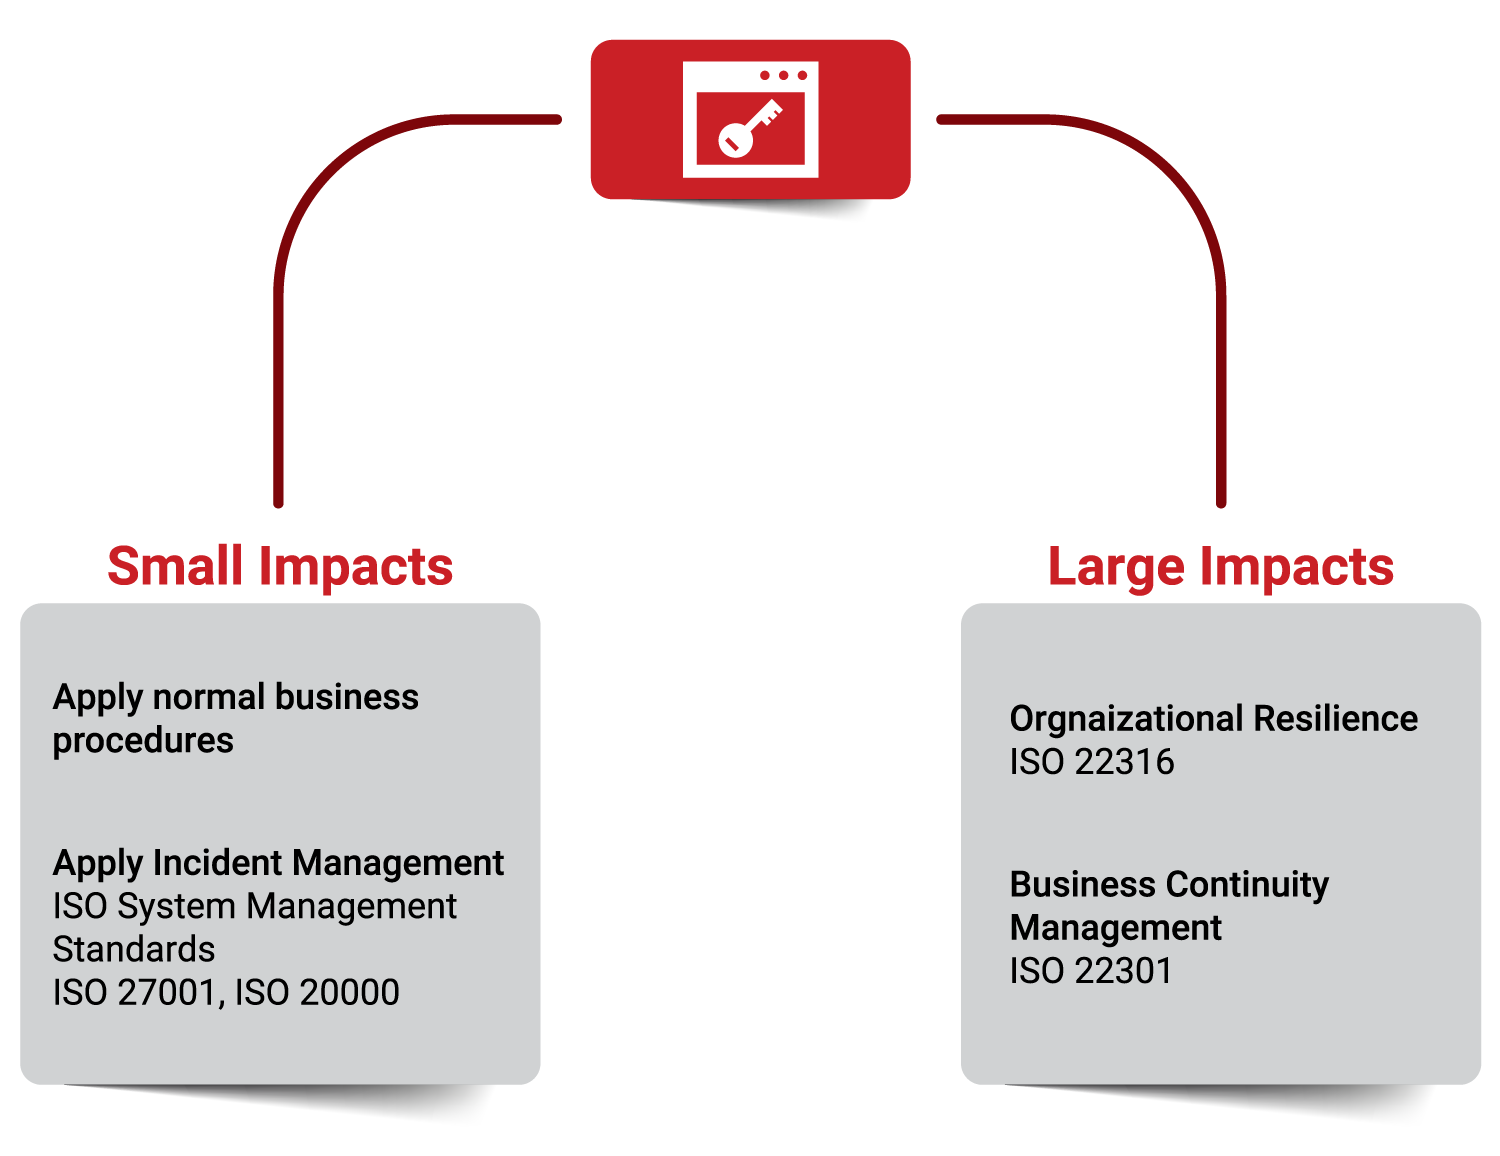 organization-resilience-small-large-impacts